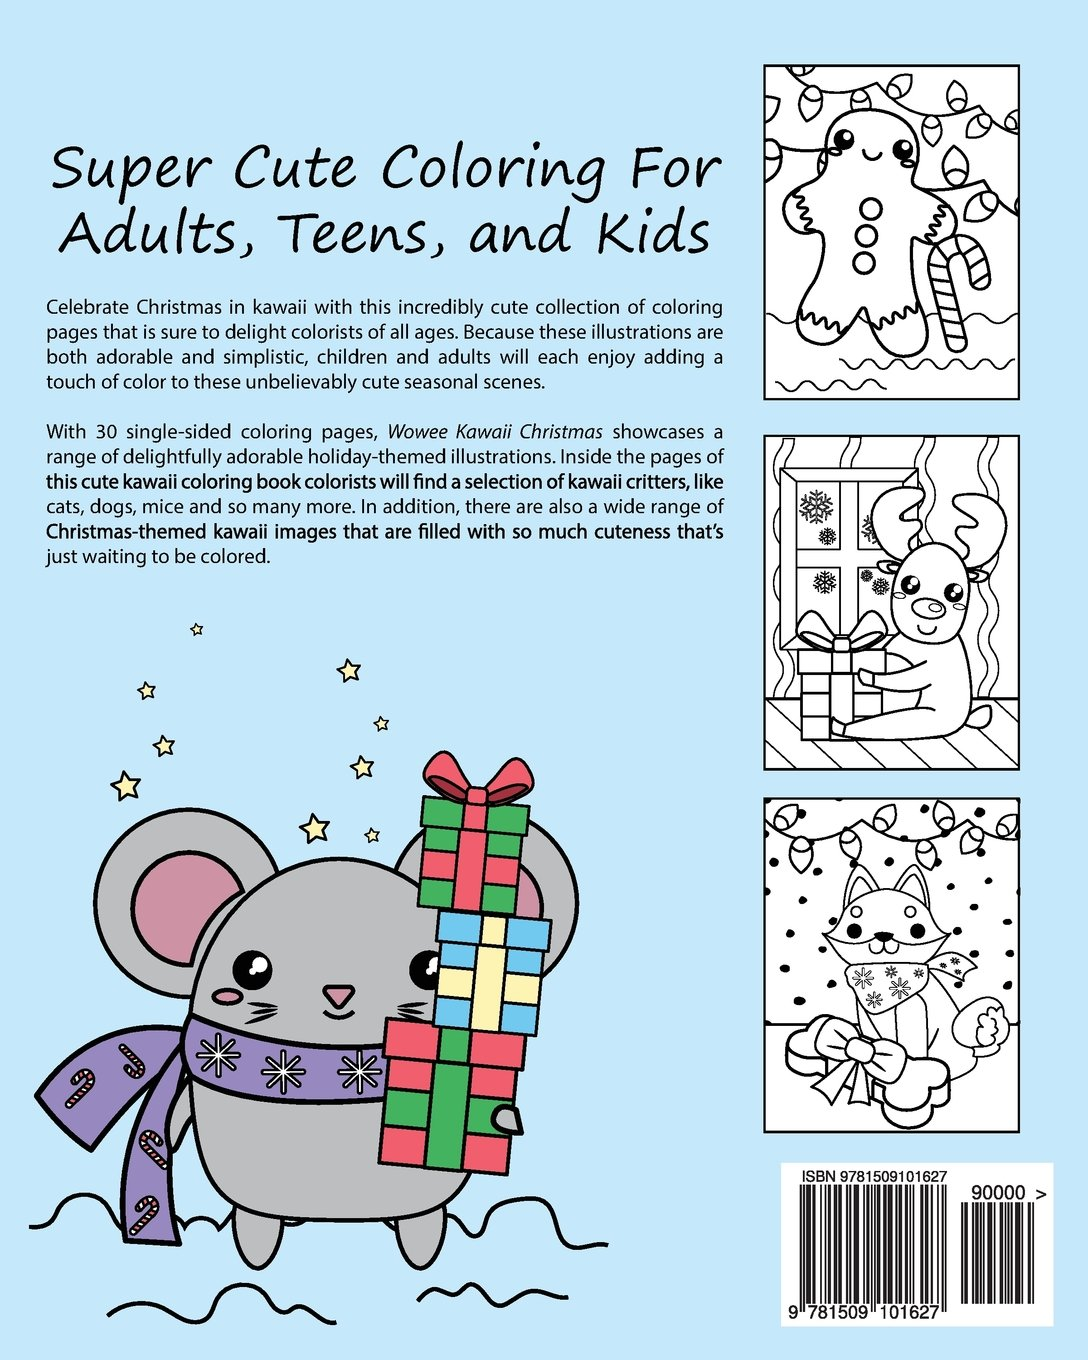 Wowee Kawaii Christmas Coloring Book Super Cute Coloring For Adults